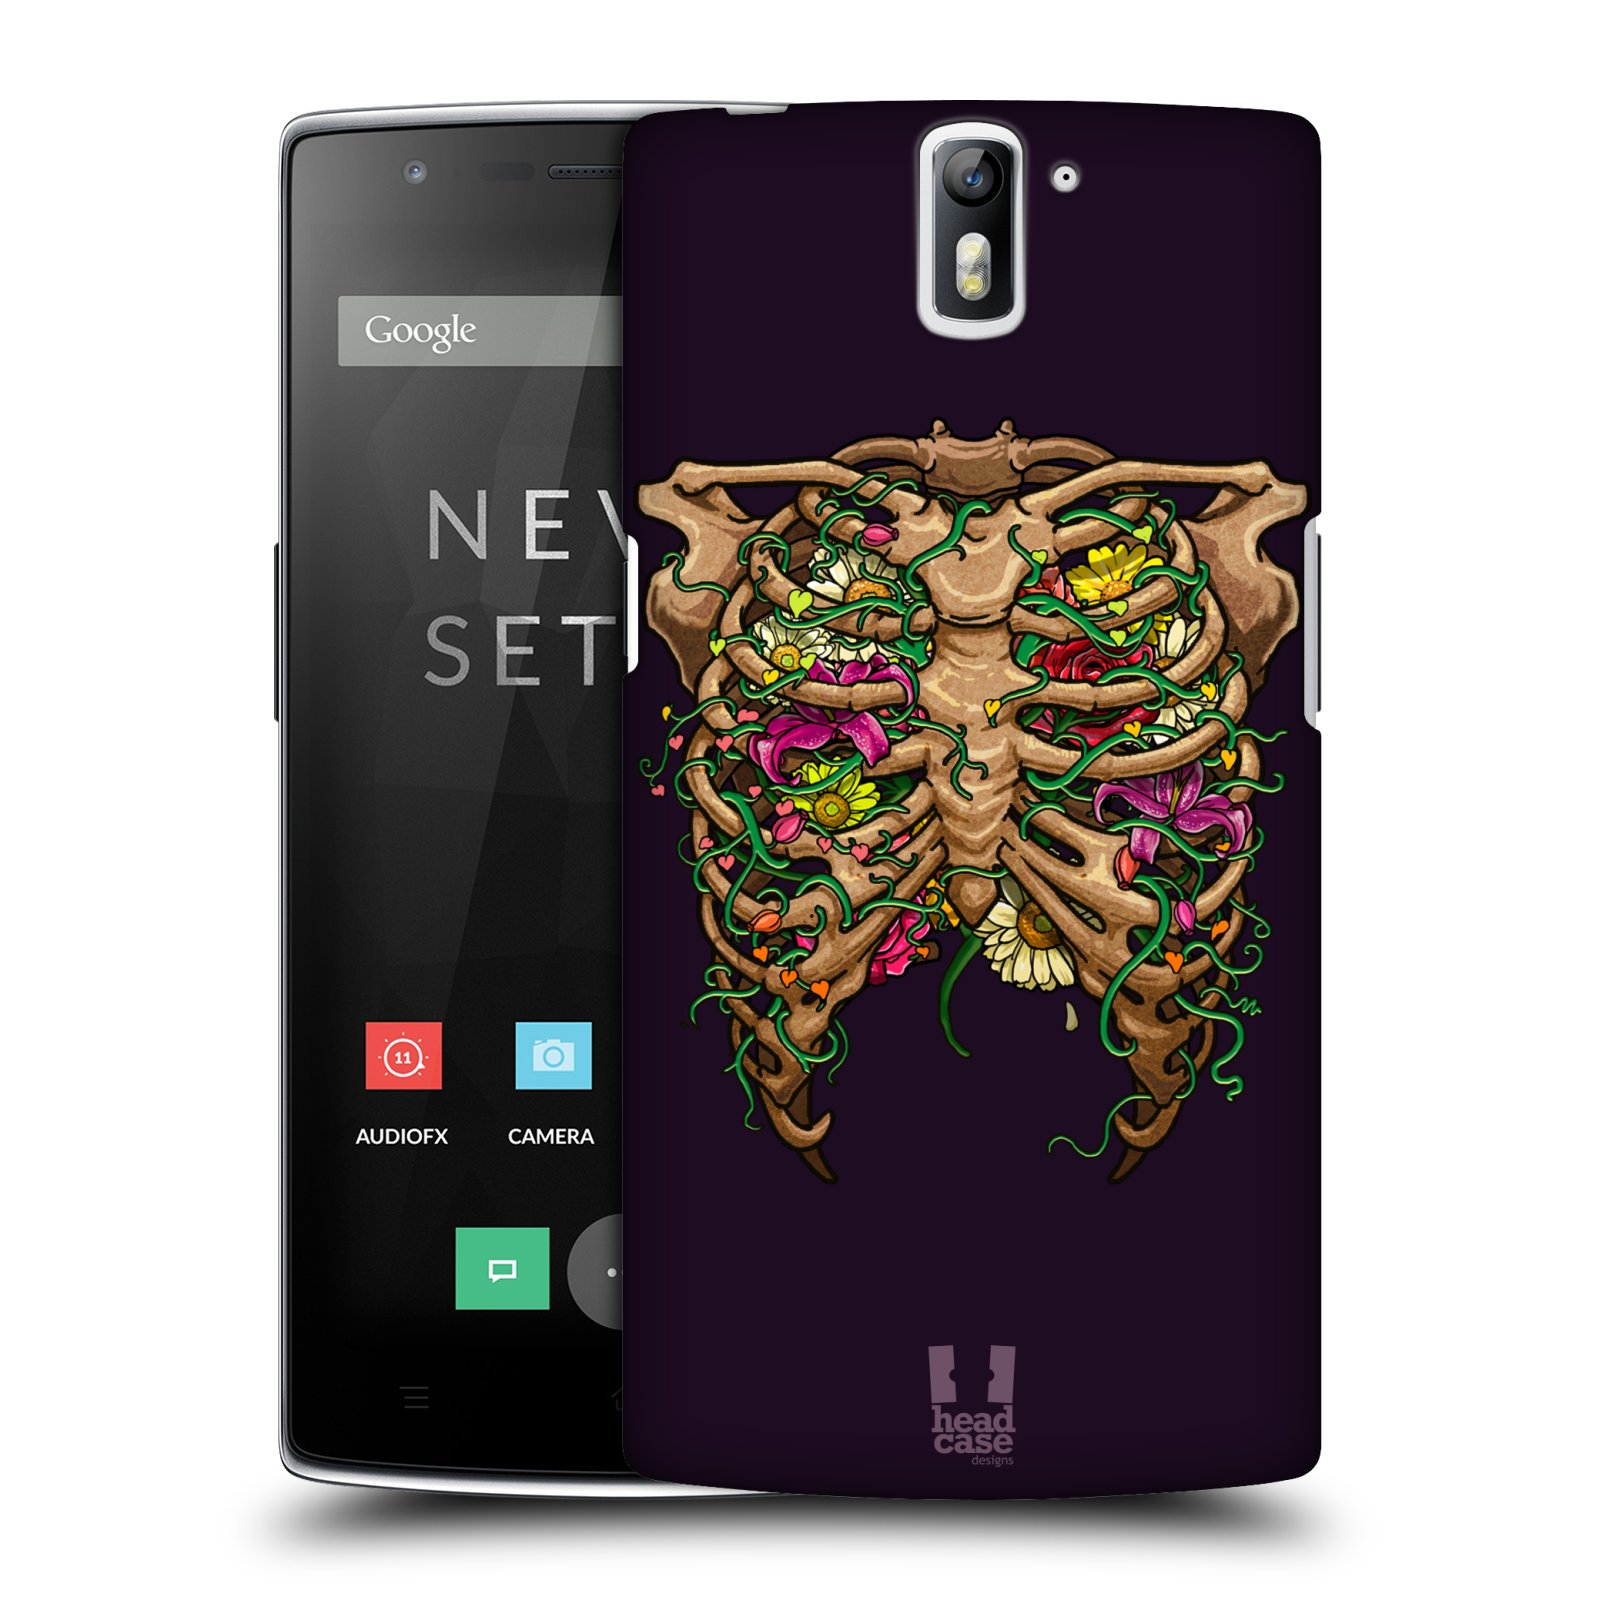 HEAD CASE DESIGNS HUMAN ANATOMY HARD BACK CASE FOR ONEPLUS ONE